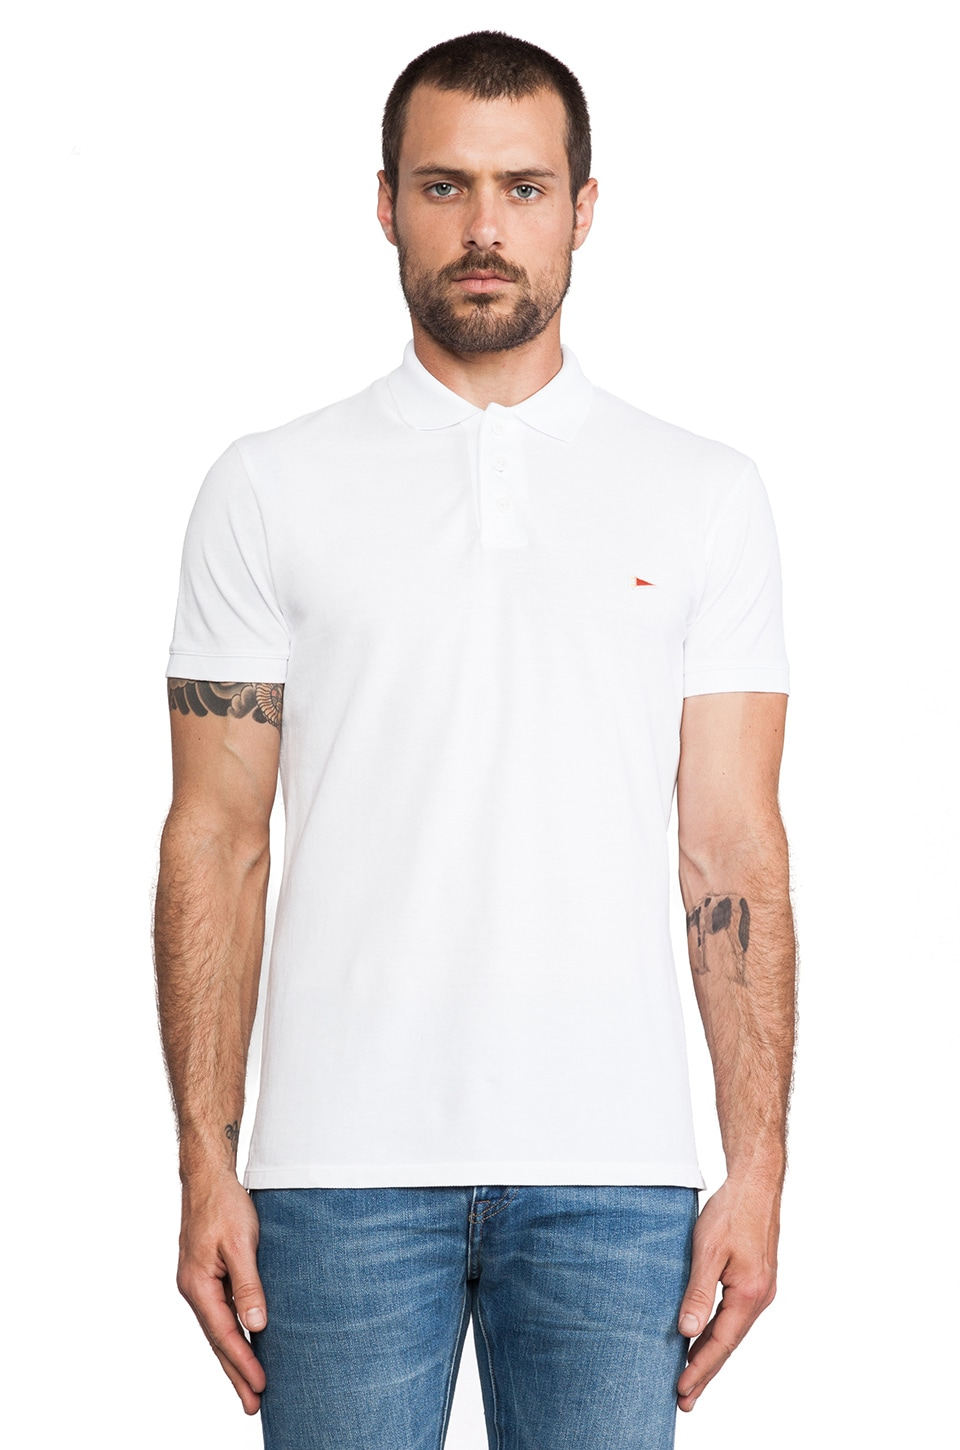 S&H Athletics Wade Polo in White